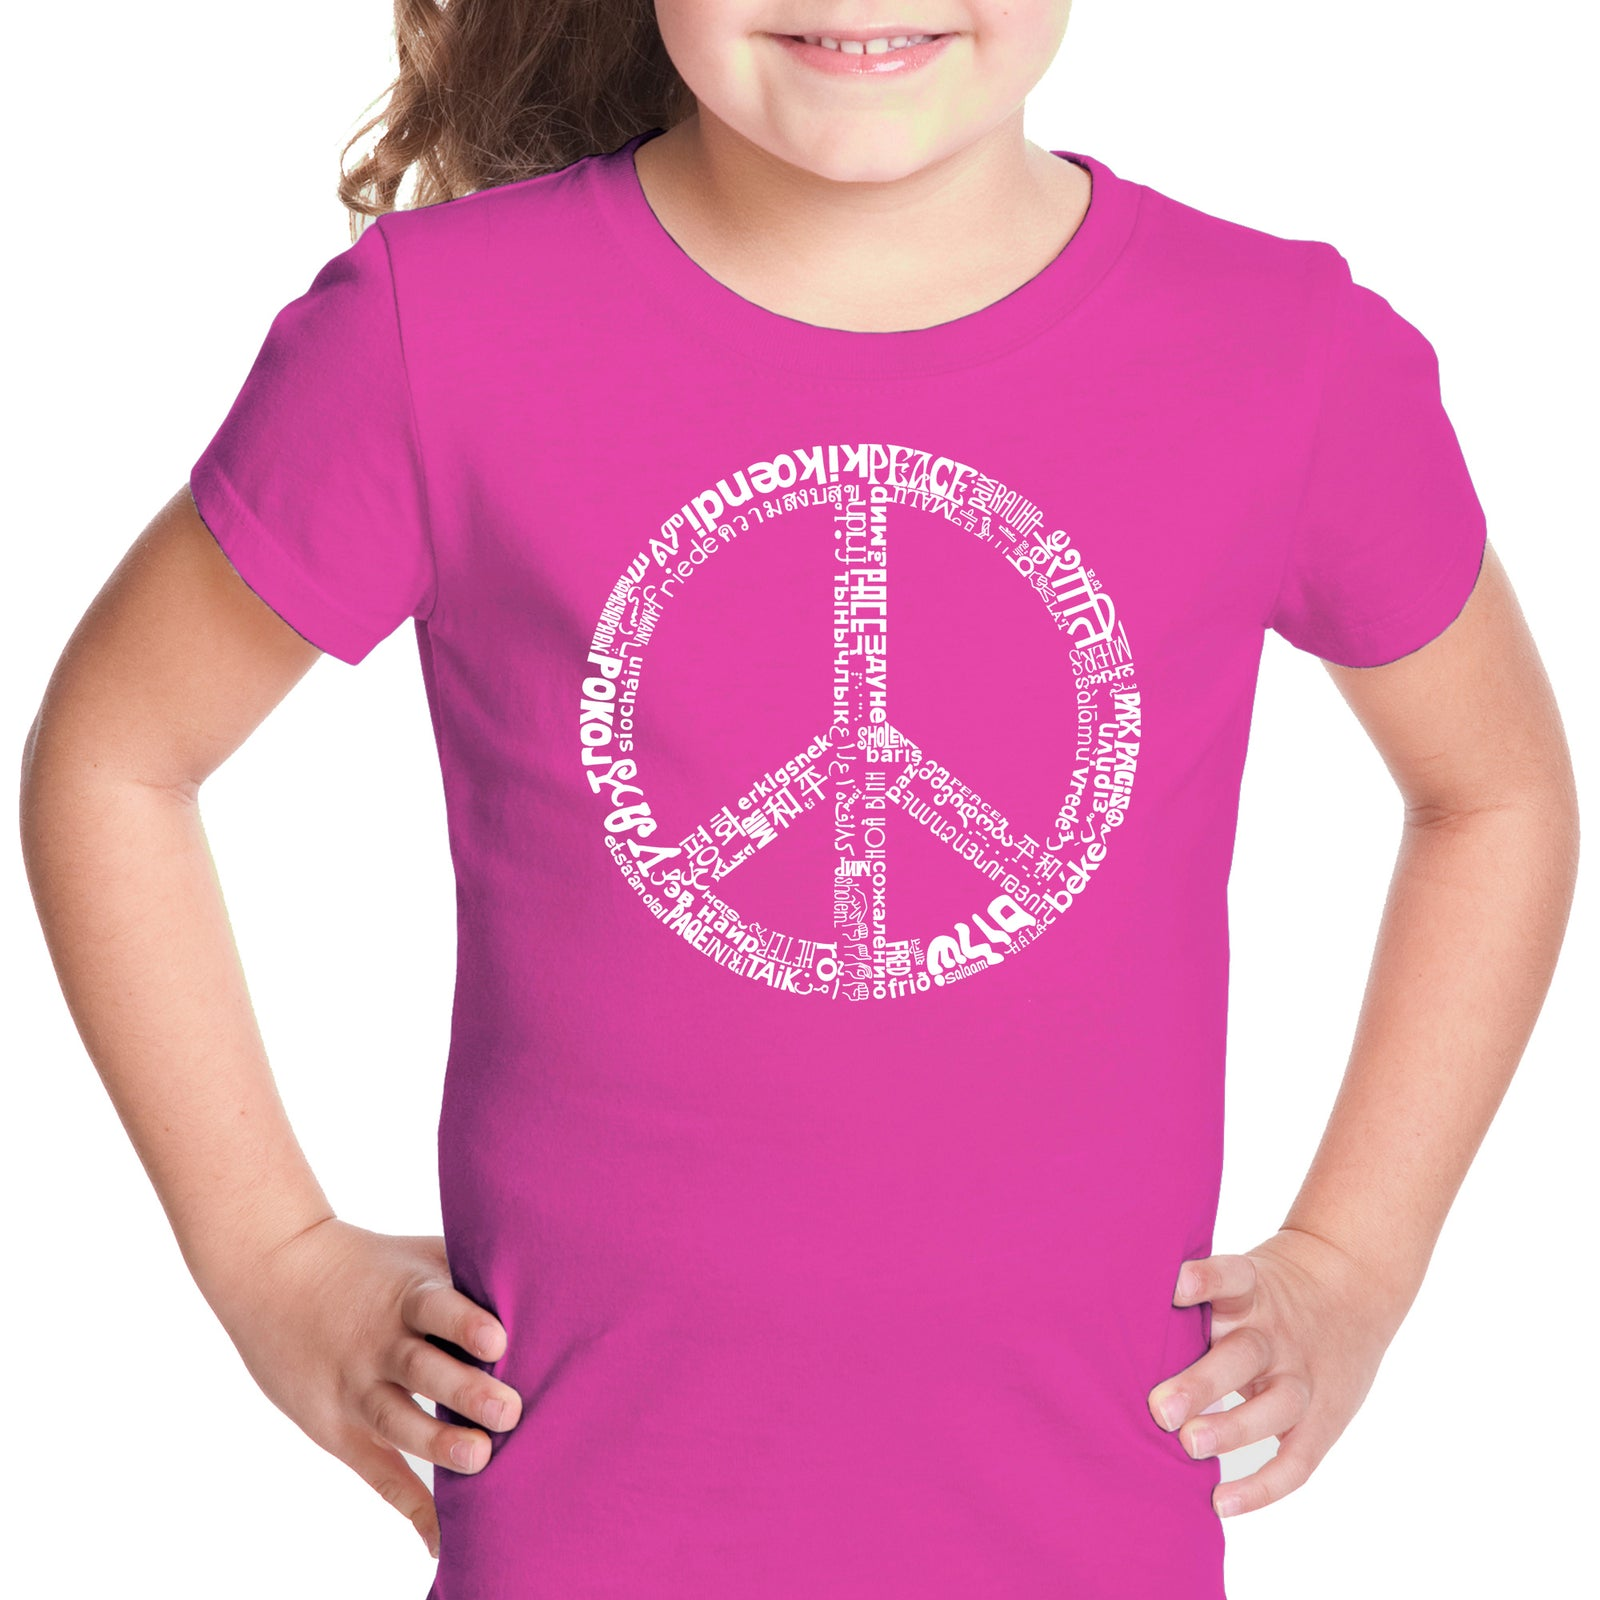 Girl's T-shirt - THE WORD PEACE IN 77 LANGUAGES